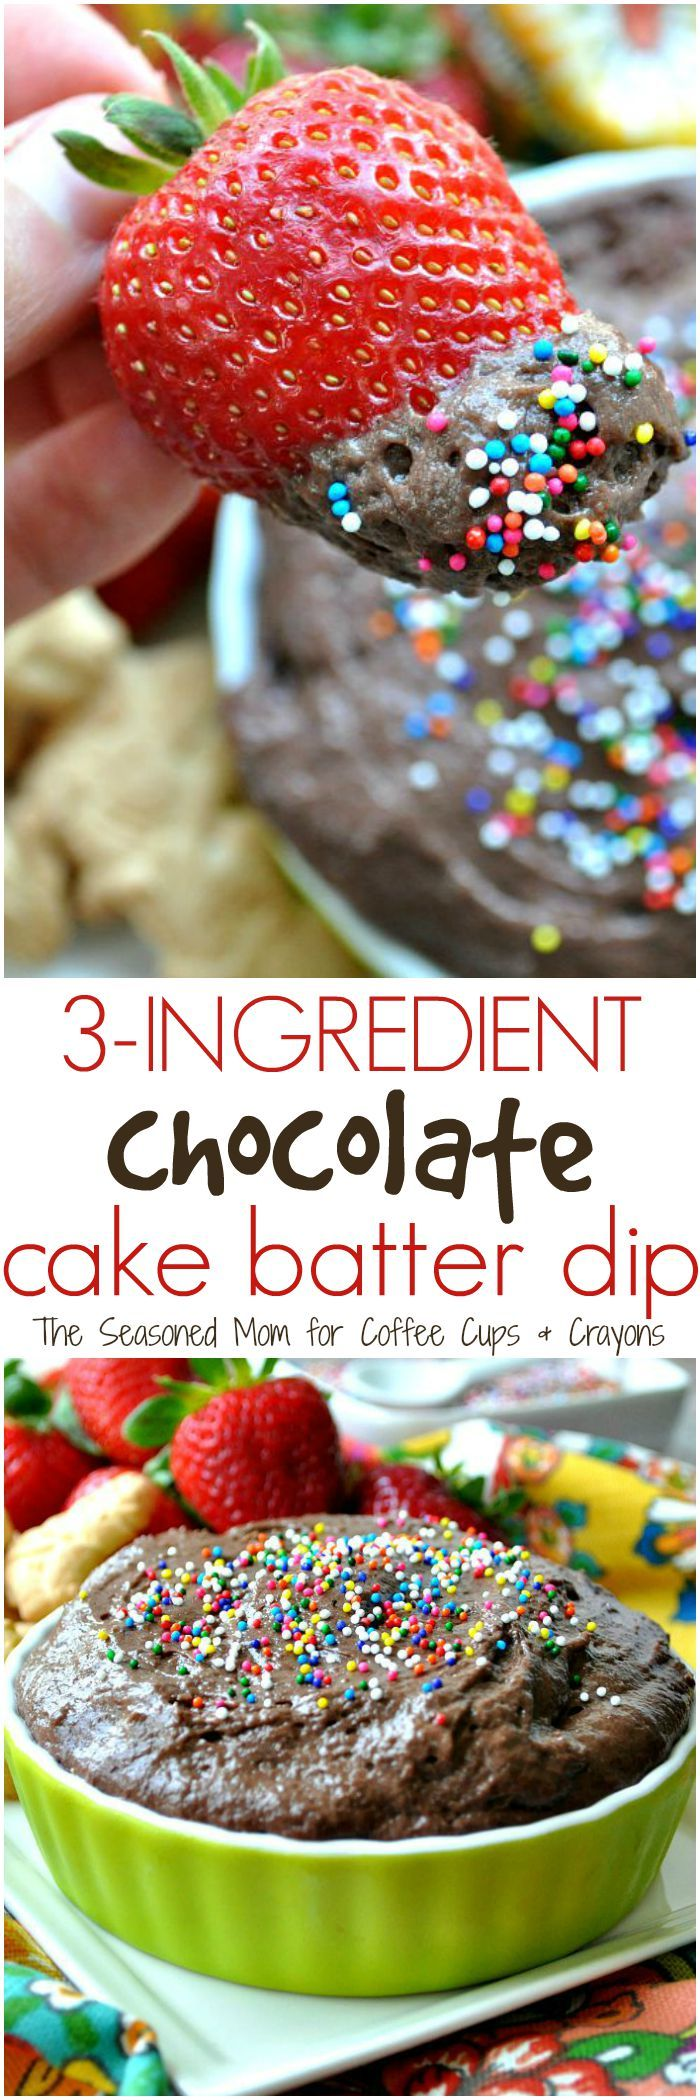 In about 3 minutes you can stir together this easy 3-Ingredient Chocolate Cake Batter Dip! It's a delicious, fast, and kid-friendly party appetizer, sweet treat, or special after-school snack!